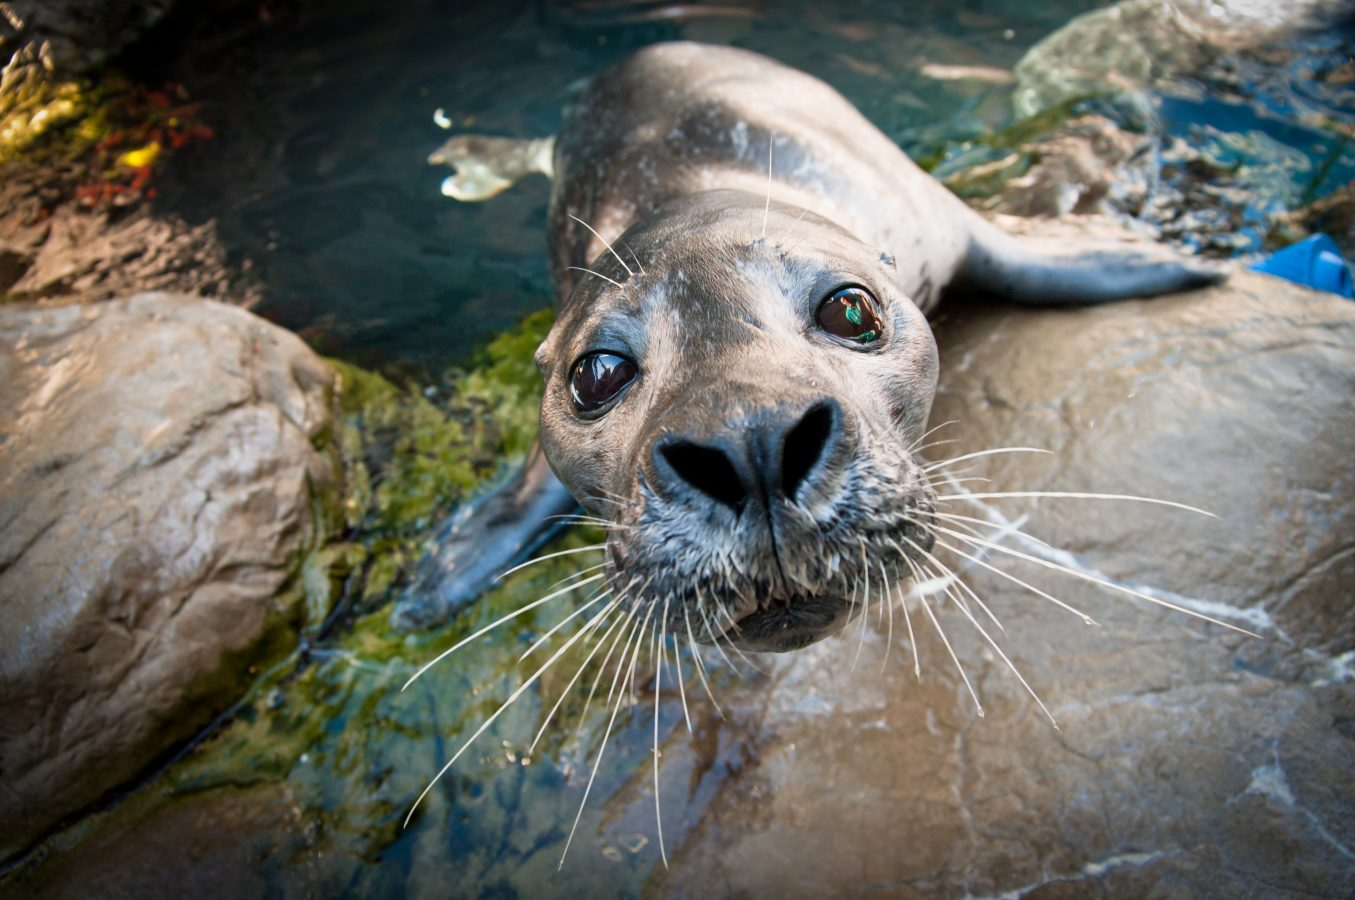 seal pops out of water to examine camera